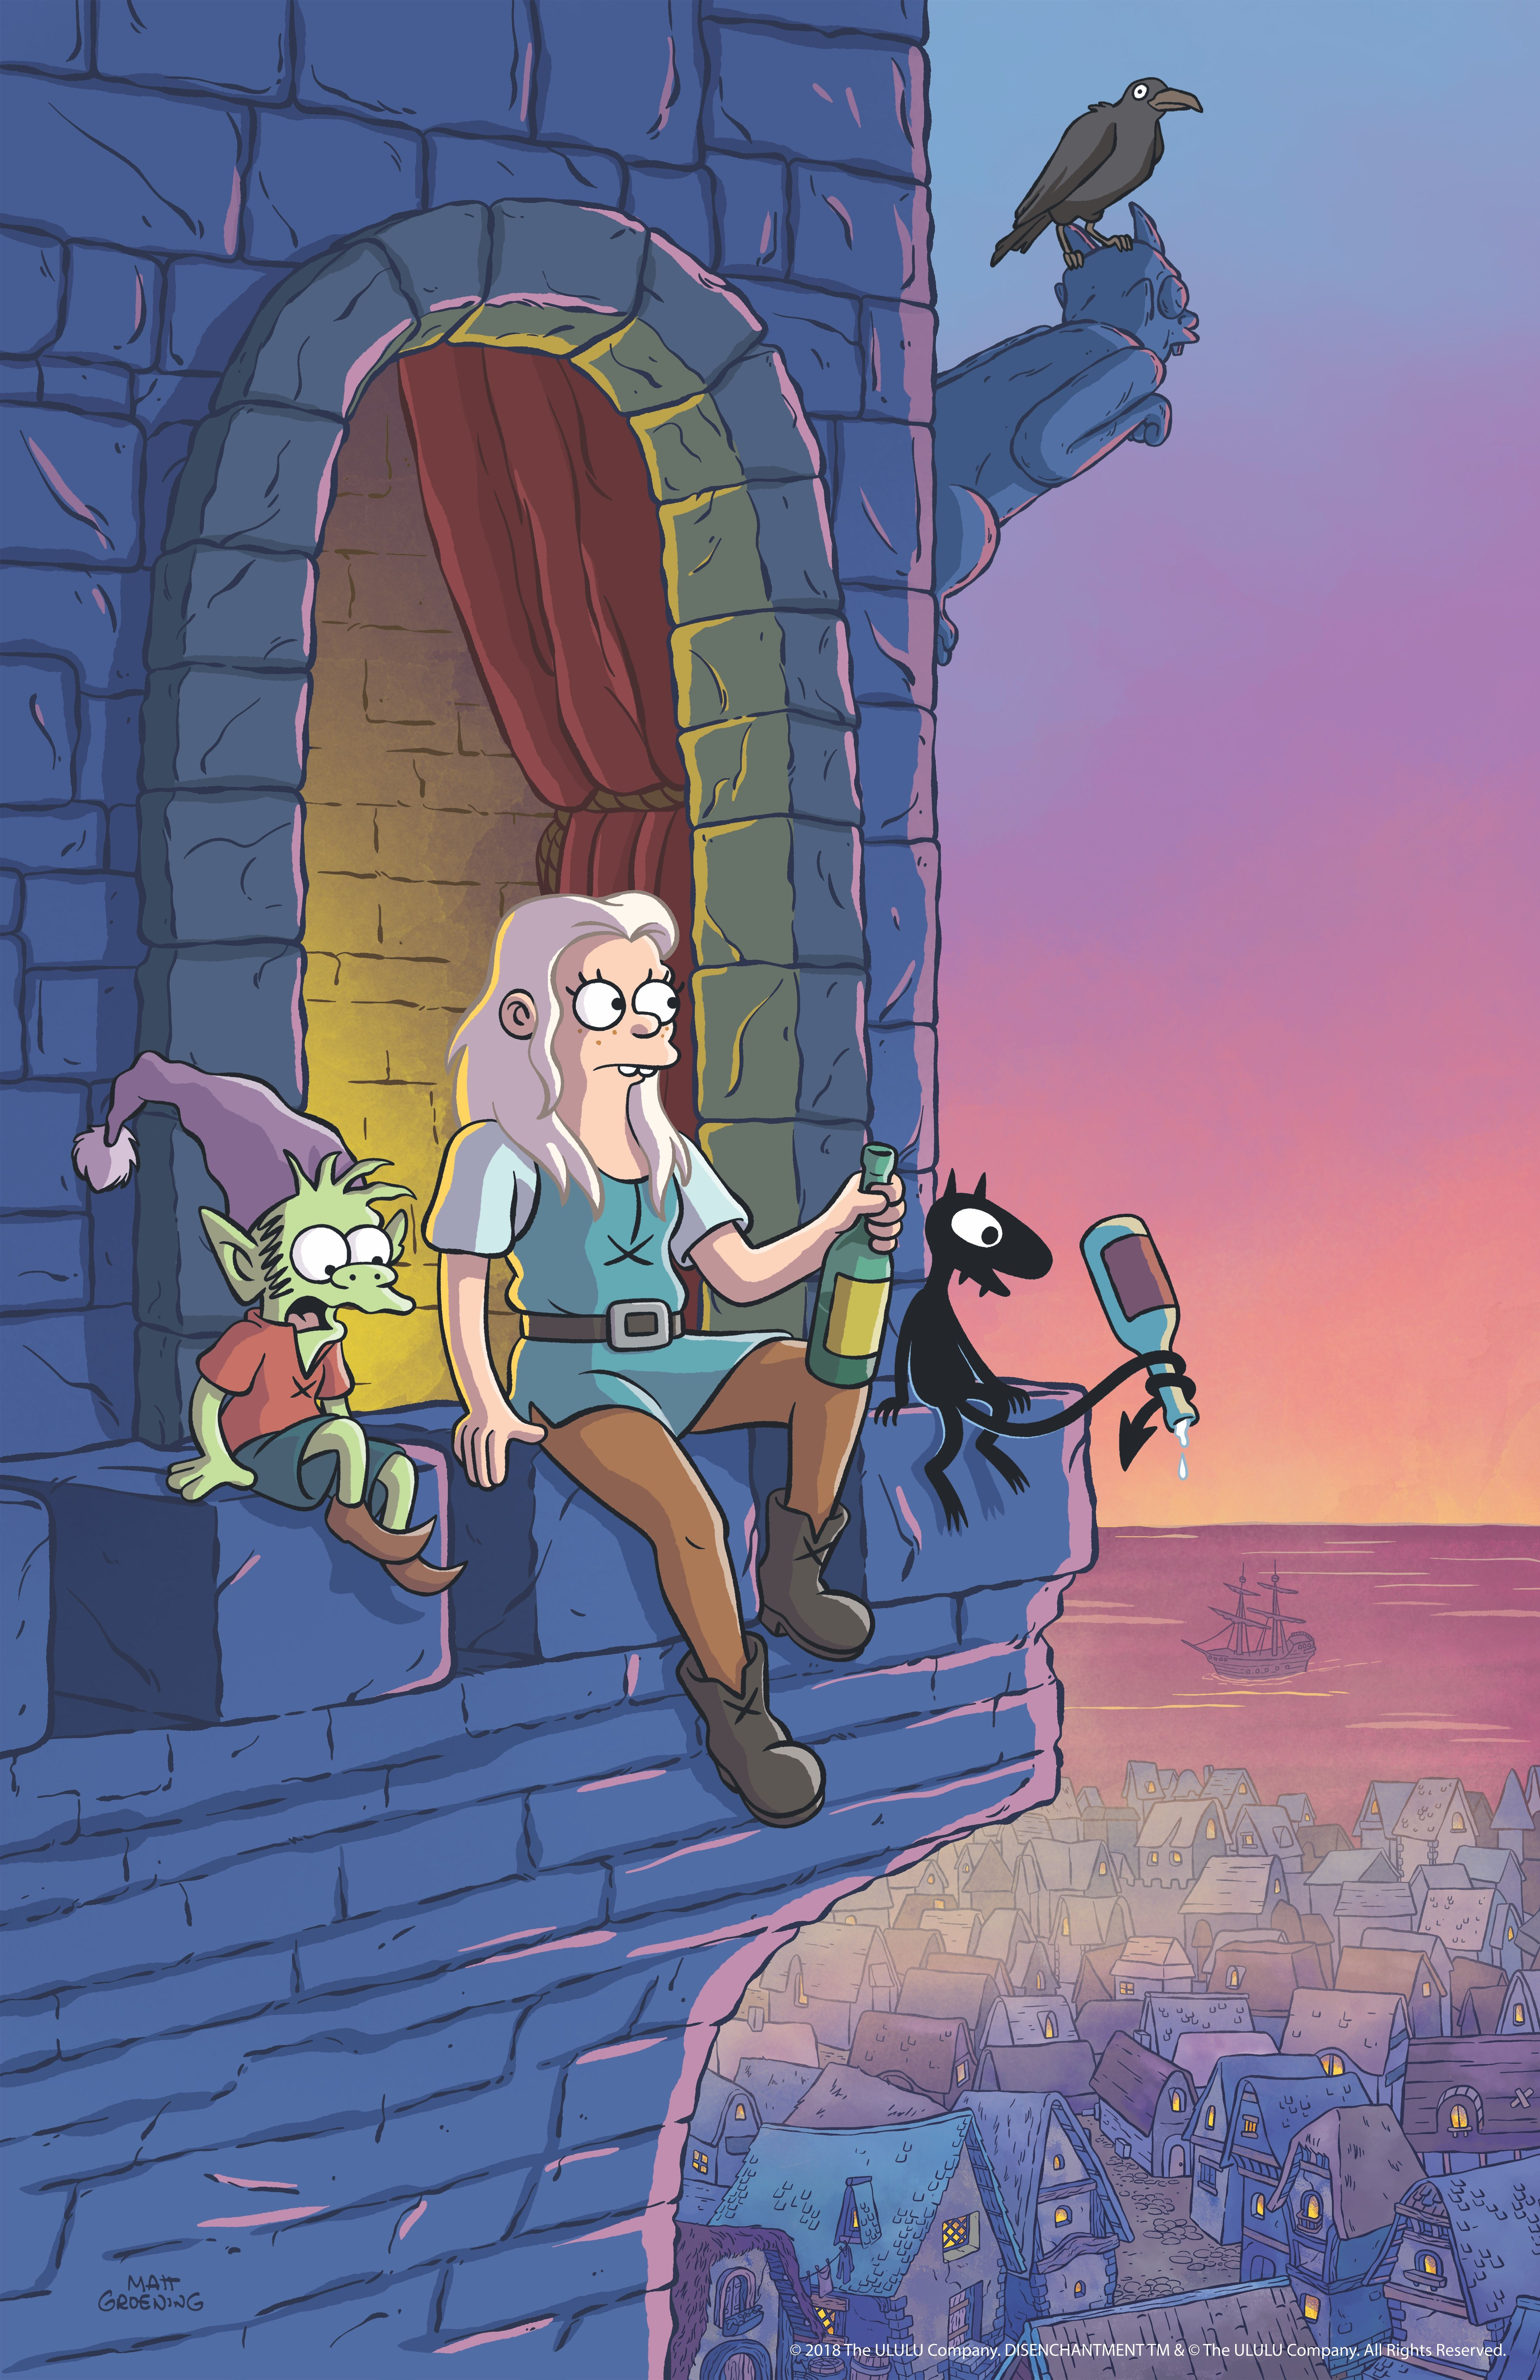 First image from Matt Groening's new animated series